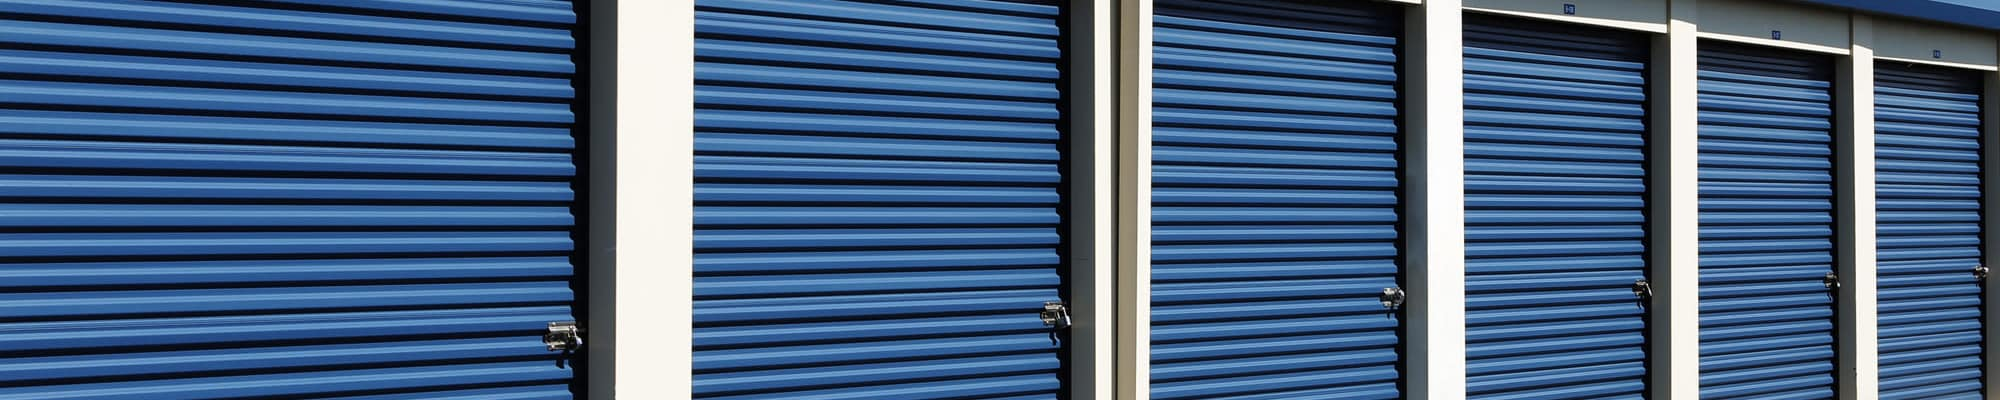 Information about the neighborhood at Midgard Self Storage in Bradenton, Florida